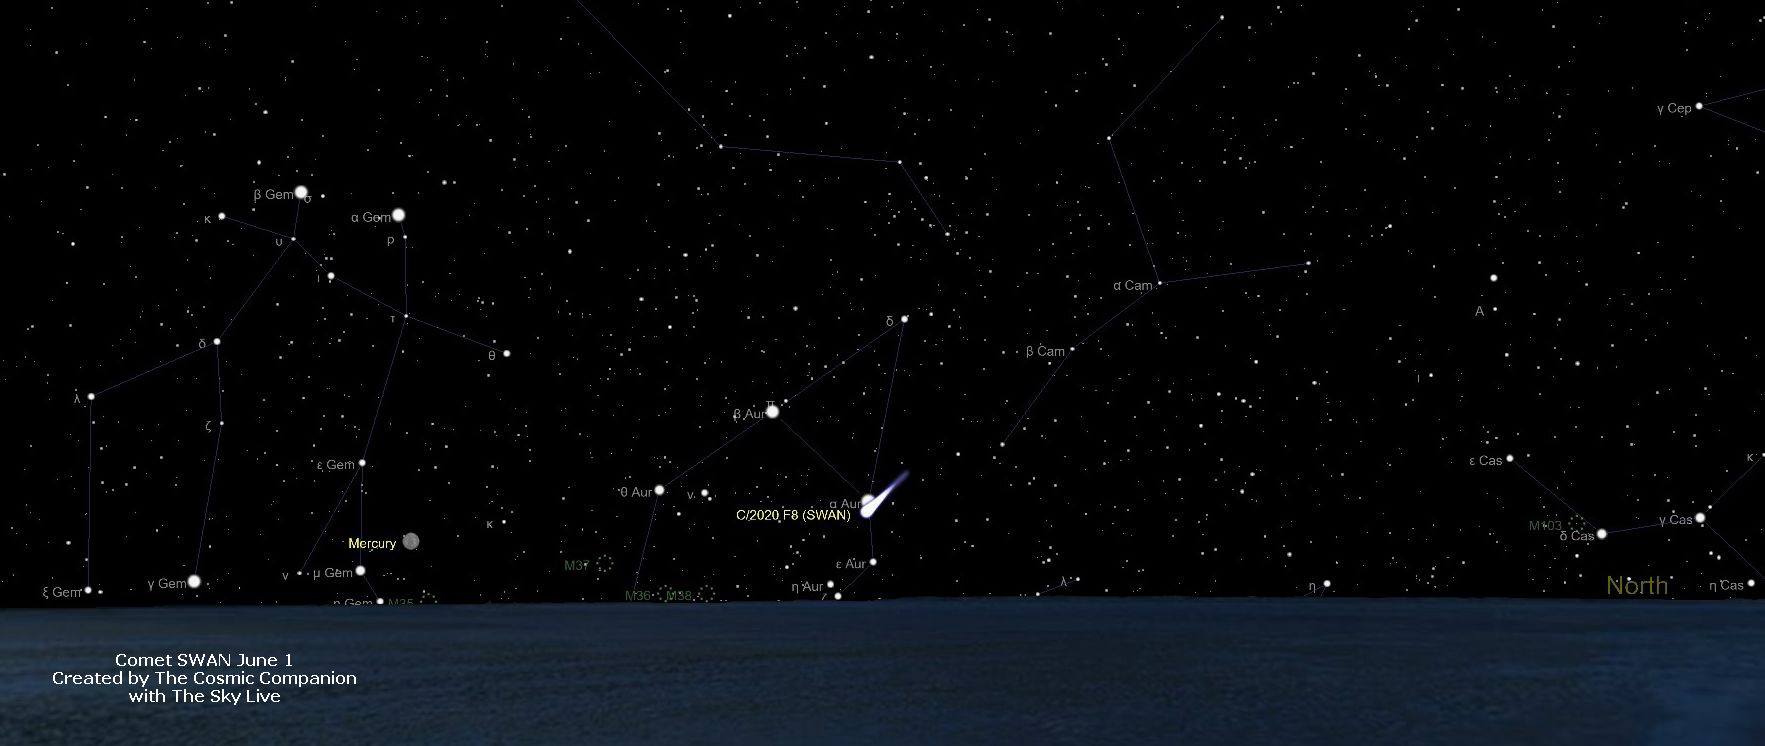 Comet SWAN is shown on a sky map, low on the northwestern horizon.